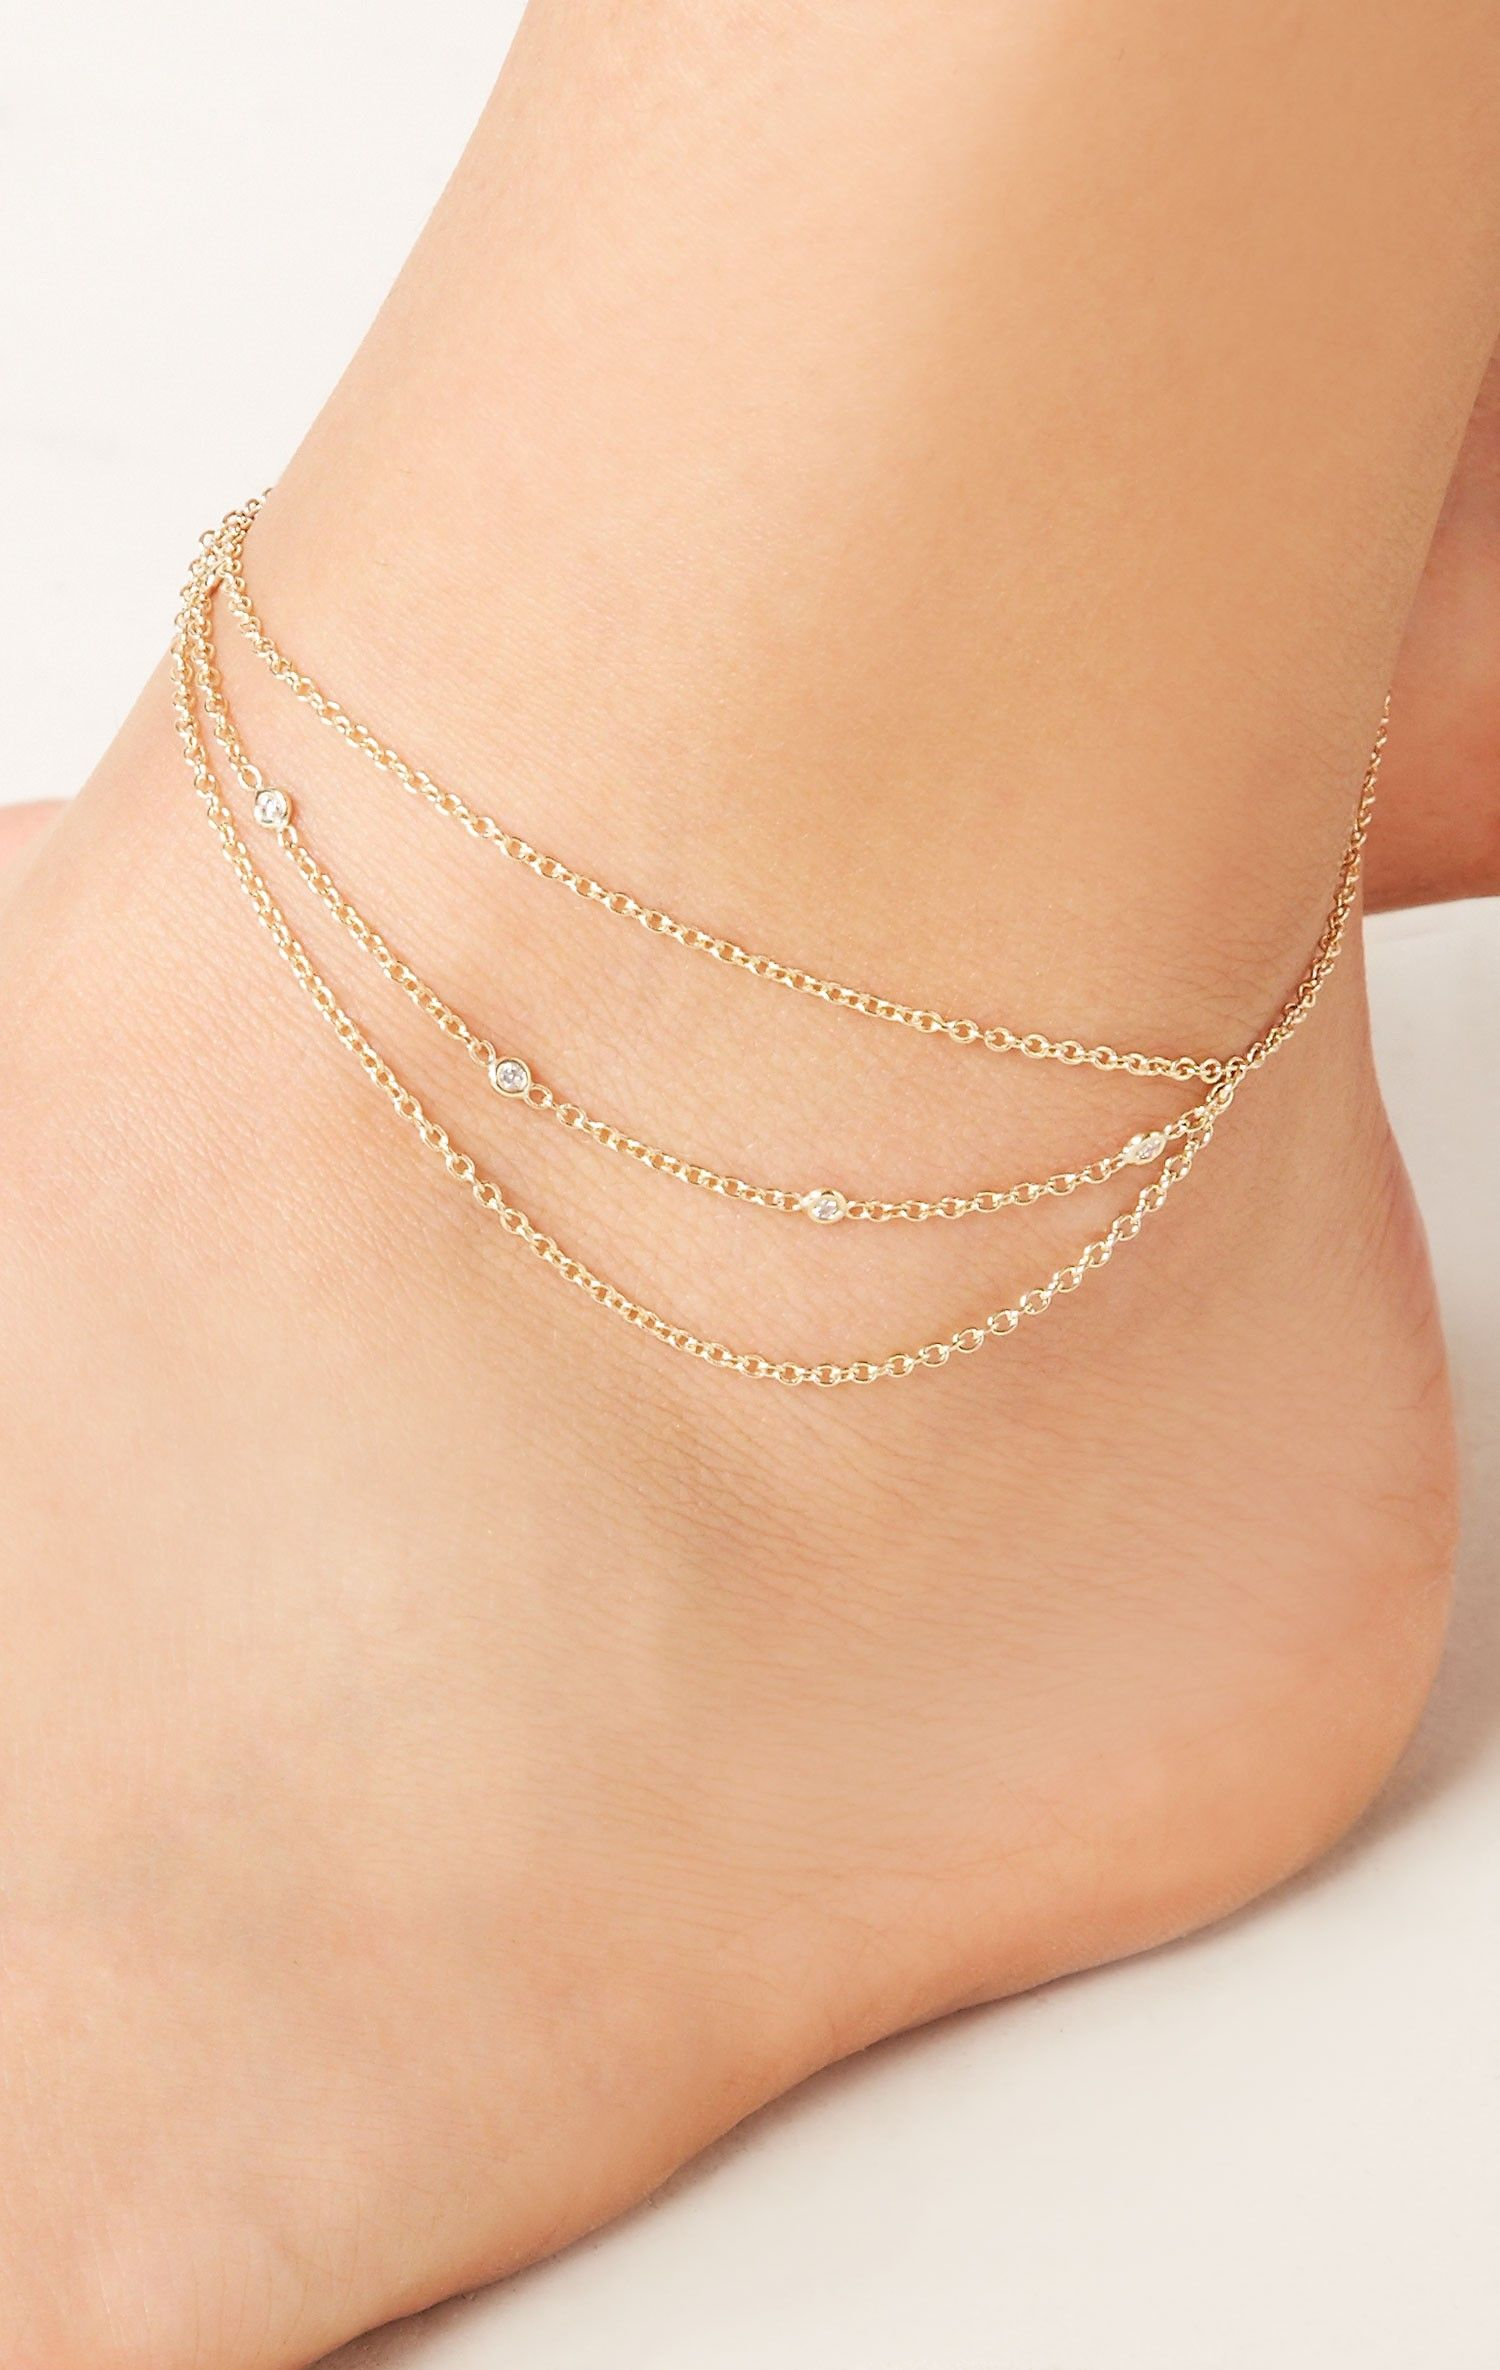 fine a silver for sandal vacations relaxing this style reminder anklets anklet is fashioned perfect details your flop flip plain spent jewelry link sterling pa by the or of whimsical aeravida summertime times products pool